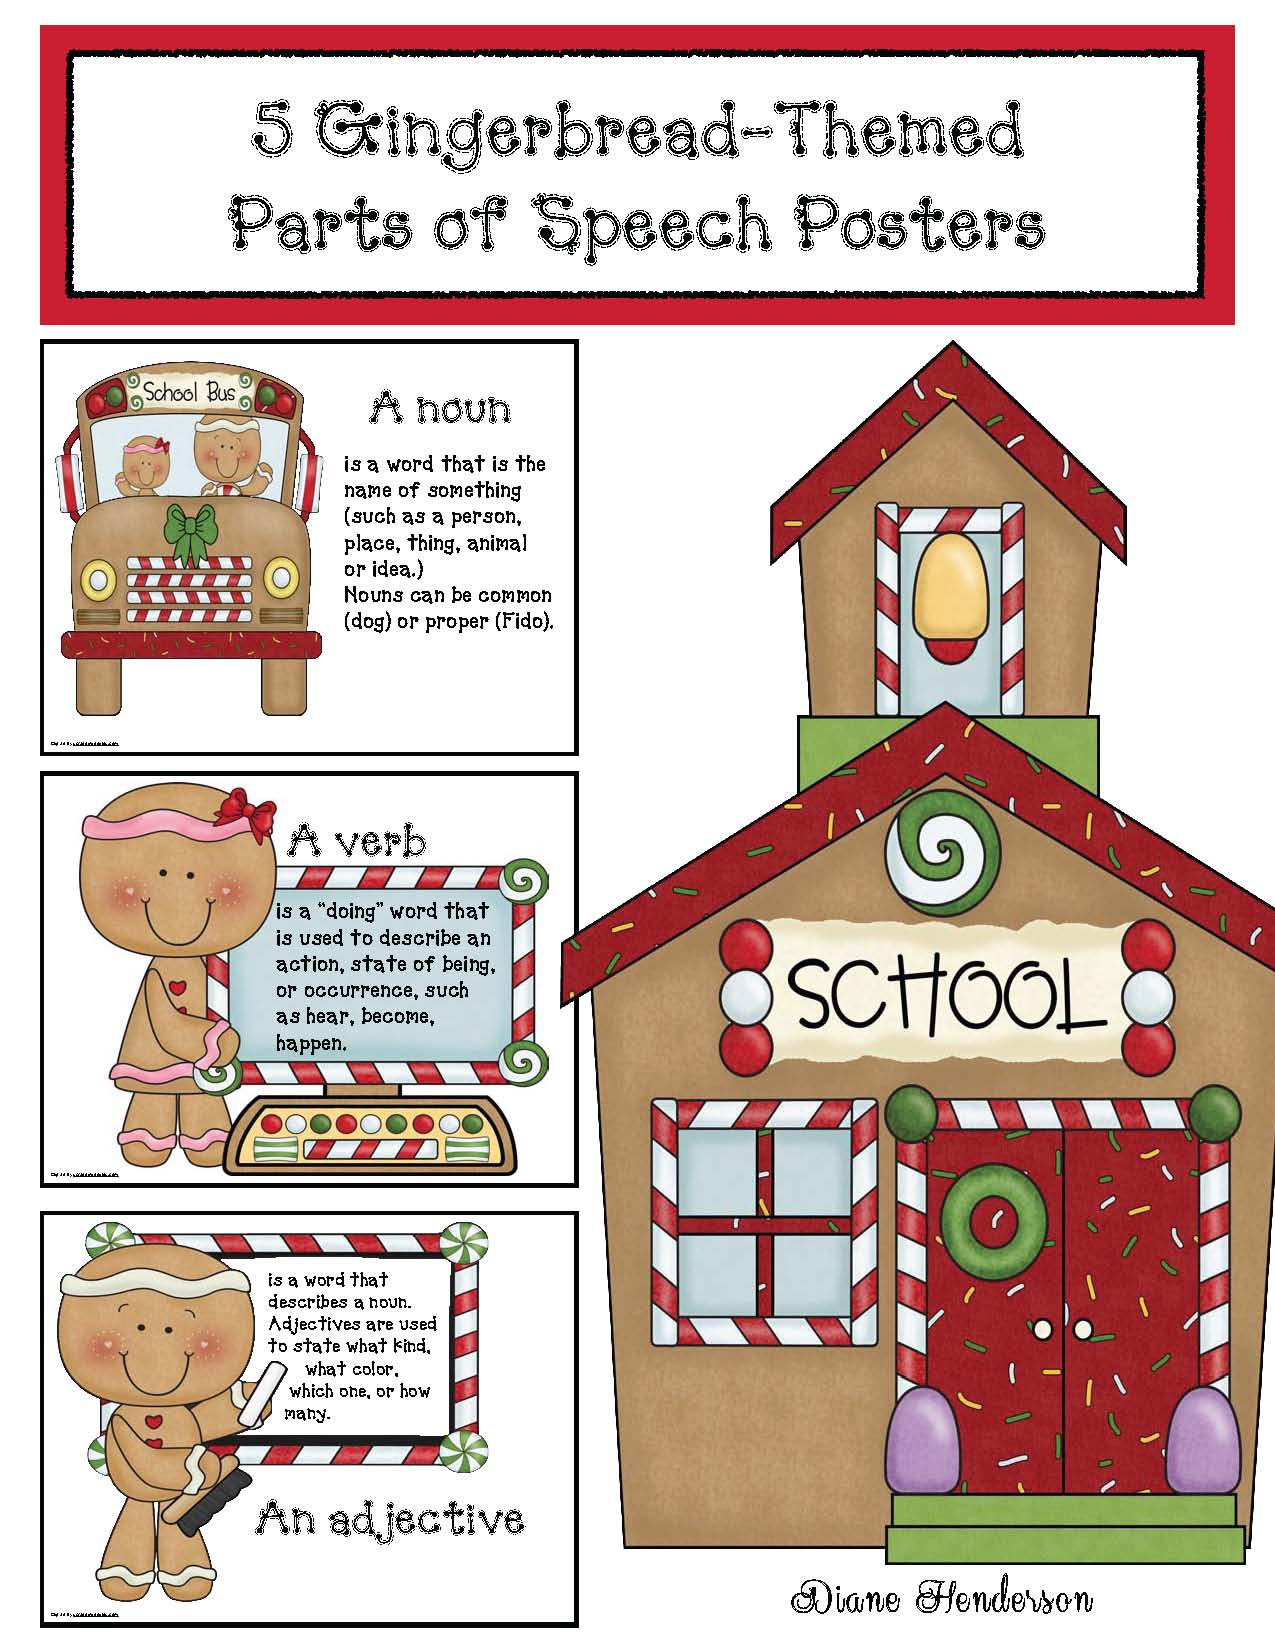 gingerbread crafts, gingerbread house, christmas crafts, gingerbread parts of speech posters